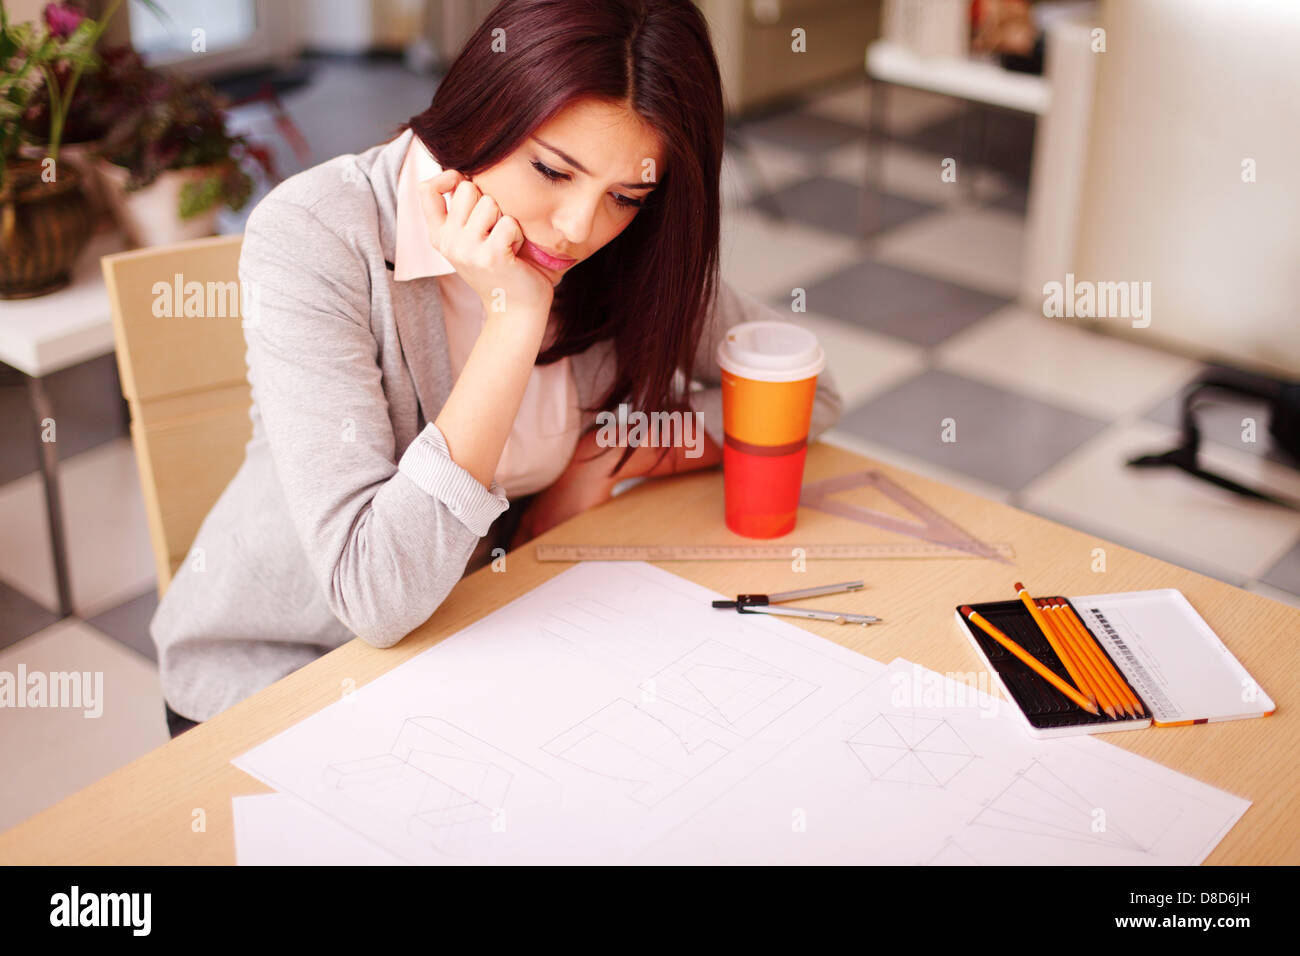 Pensive young architect having a problem with her technical drawings - Stock Image